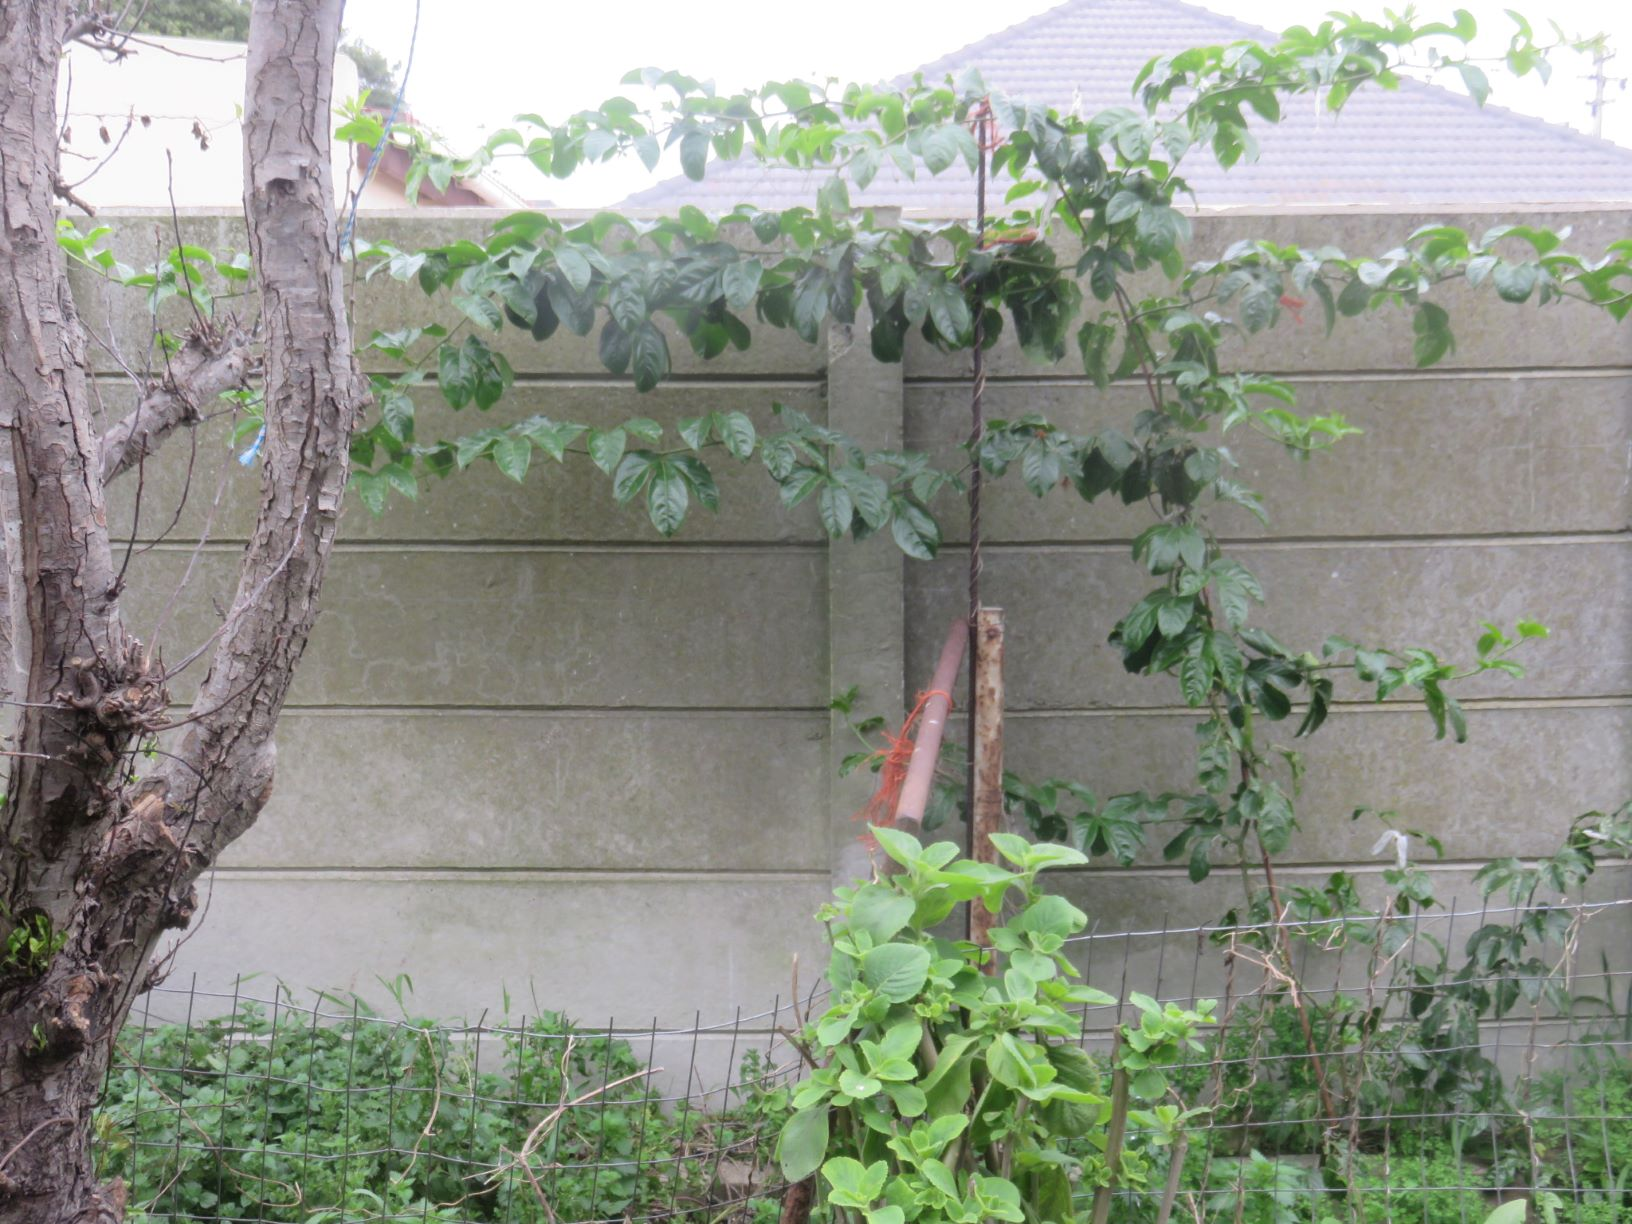 Nearly a year later, the vine gnawed to the brink of life is thriving